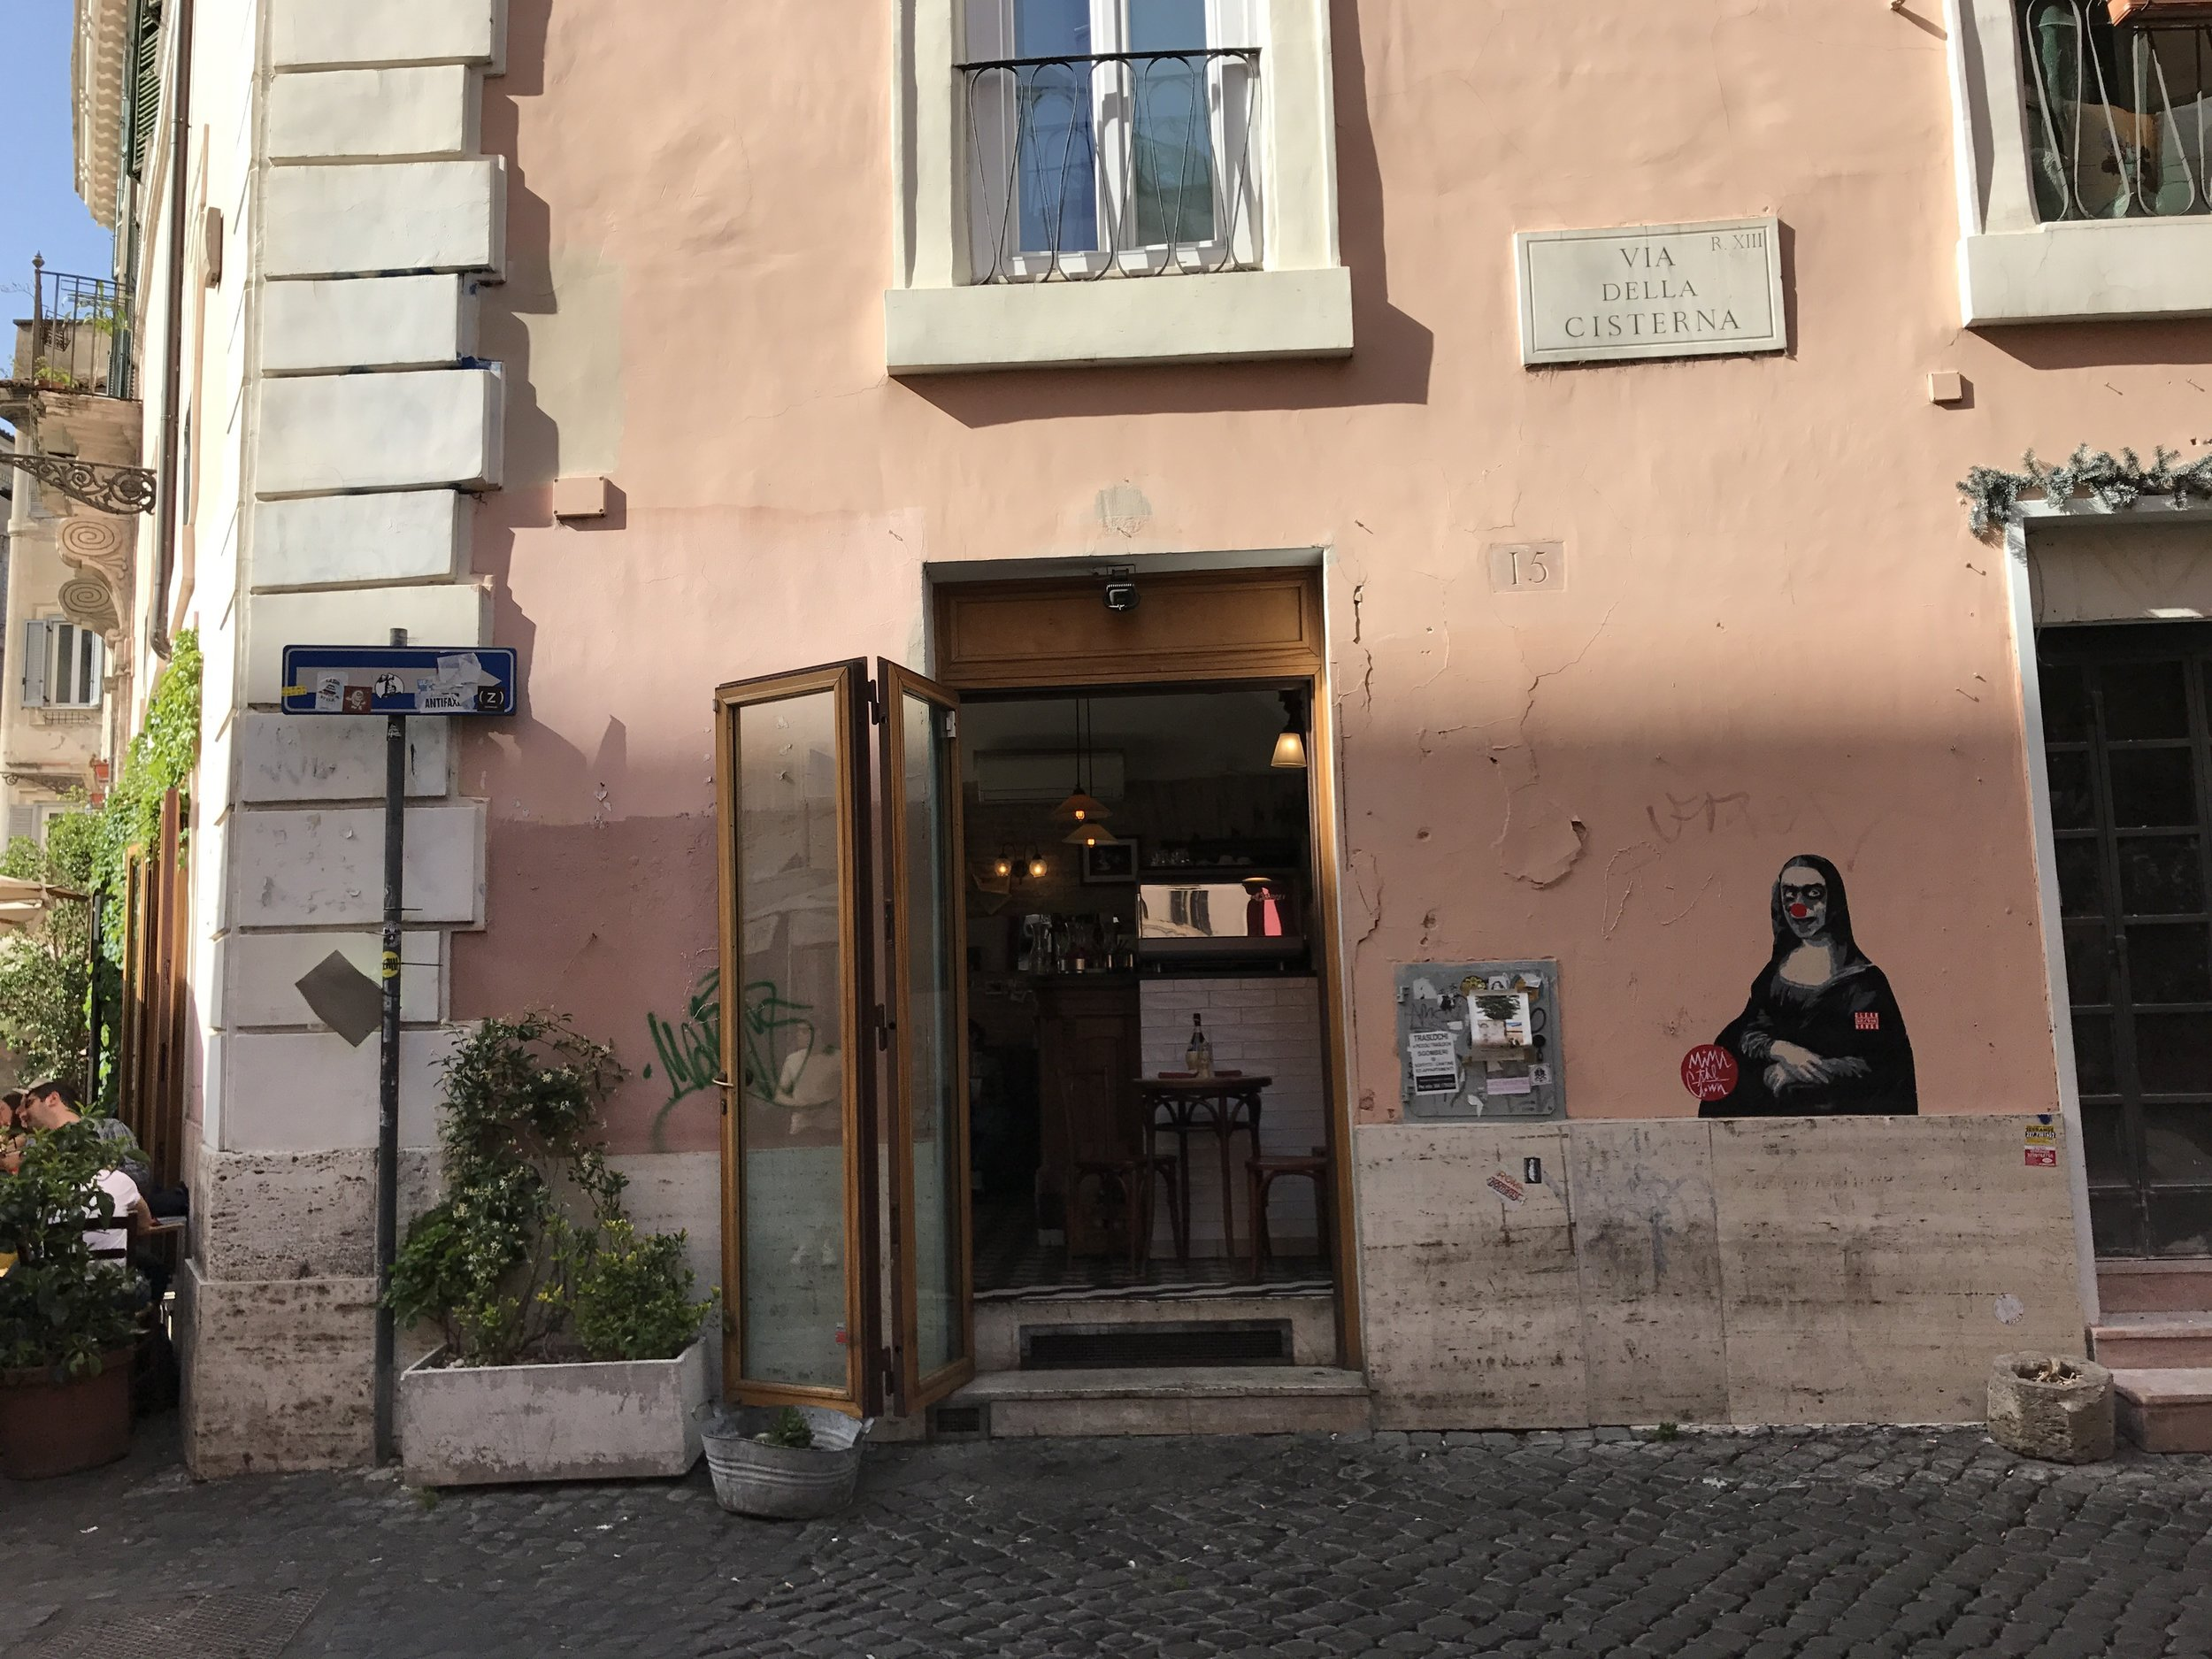 Wander around the Trastevere area in Rome and you'll find many great places to eat (read: stuff your face)